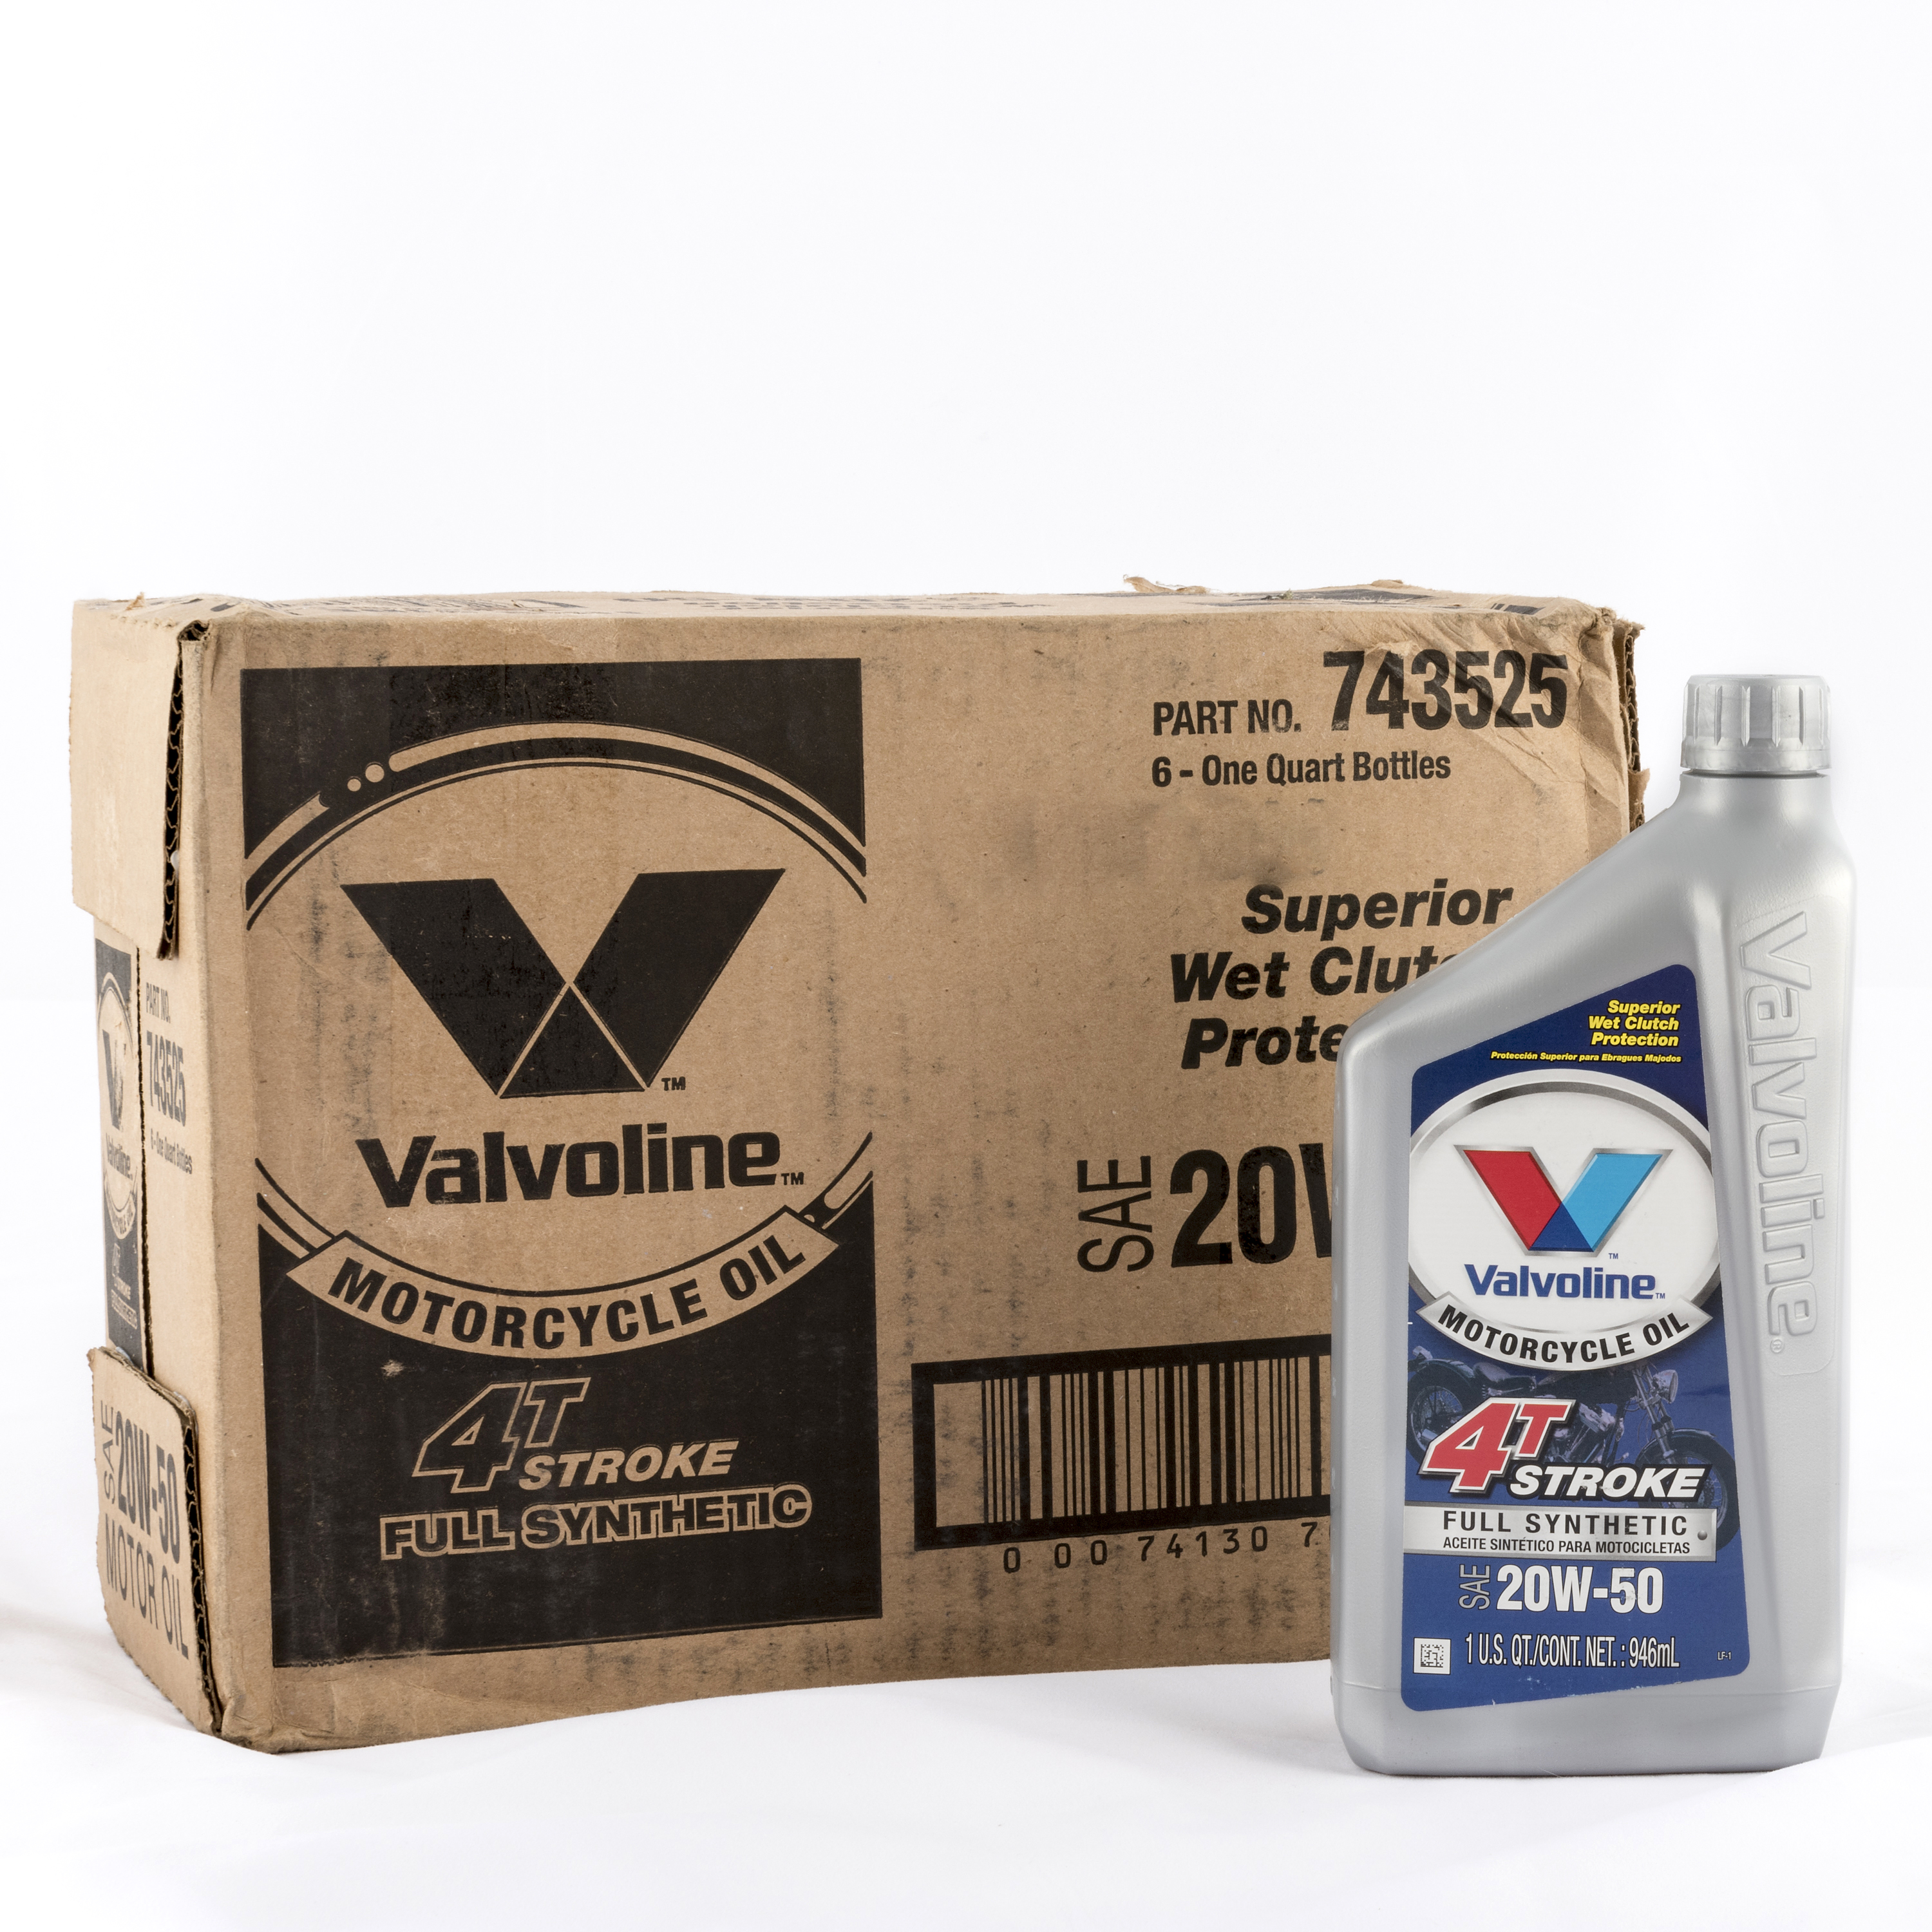 Valvoline Motorcycle Full Synthetic 20W-50 Motor Oil, 1 Quart, (6-pack)